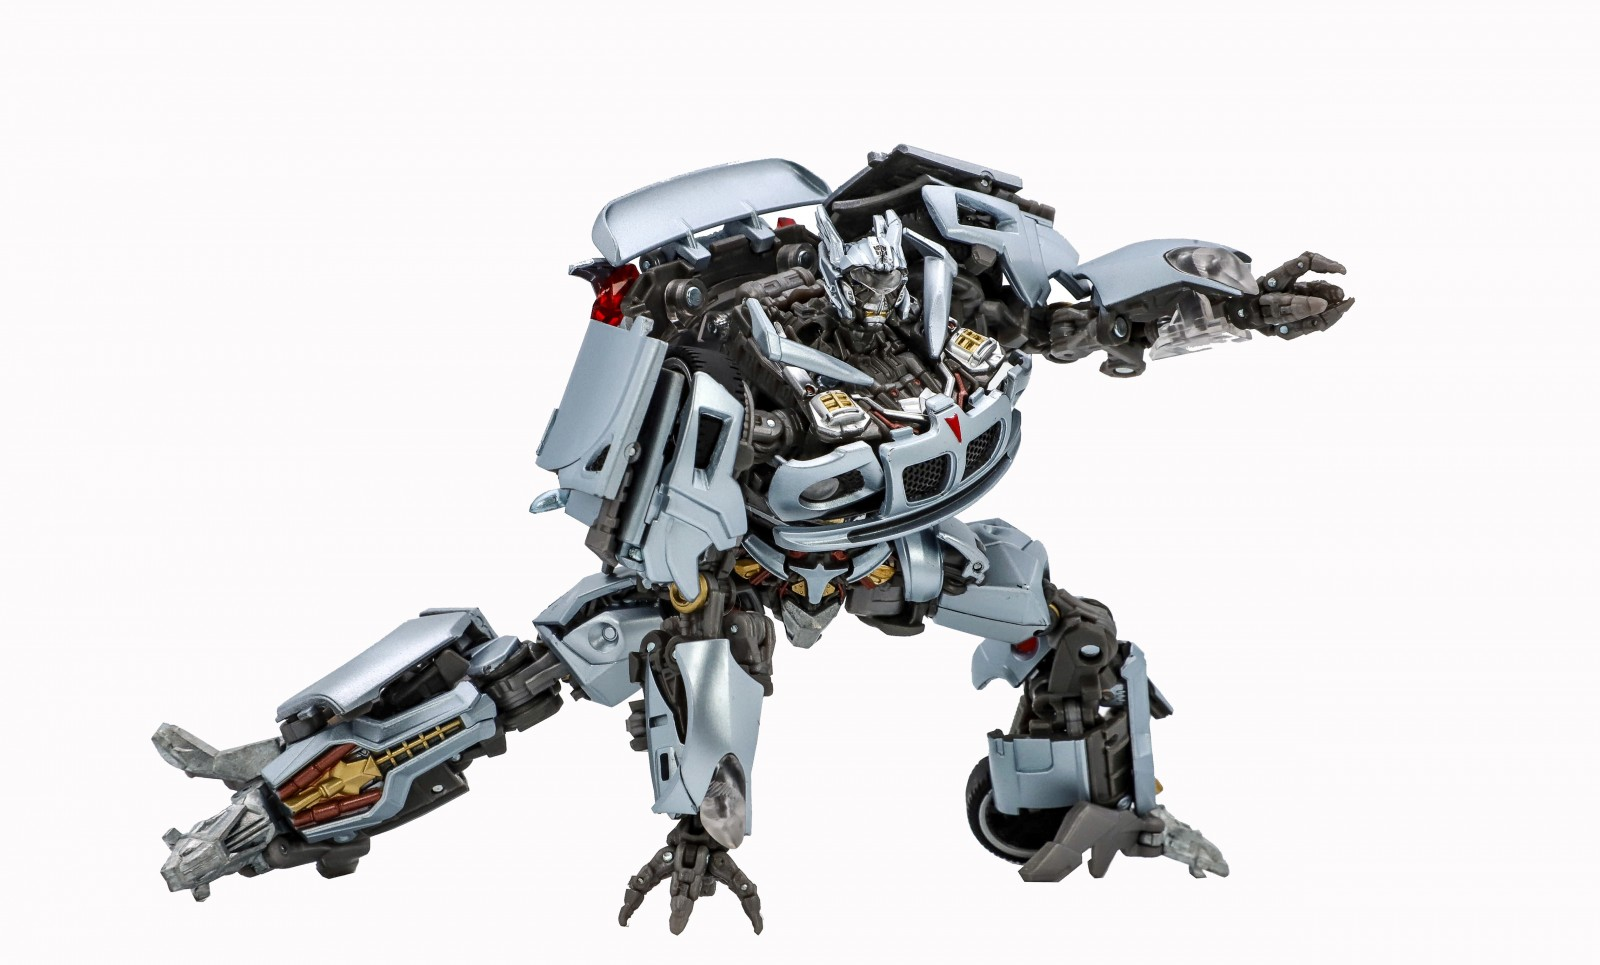 Transformers News: MPM Megatron and Jazz stock photos, prices, and release dates announced